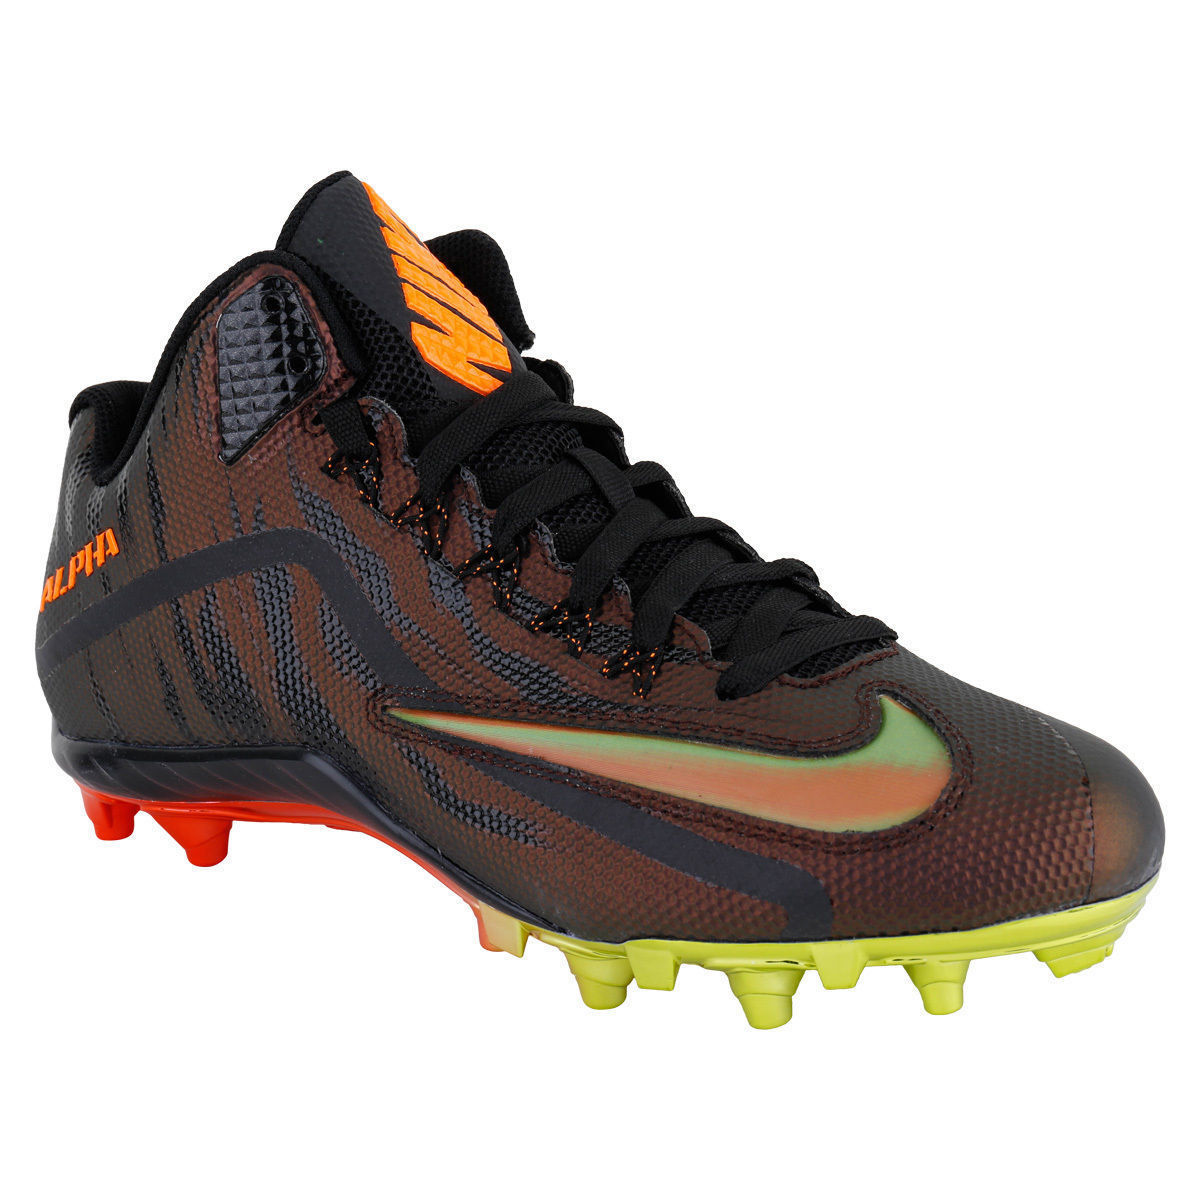 innovative design 5ec96 d2f6a NEW SIZE 13 NIKE ALPHA PRO 2 3 4 TD LE MID FOOTBALL CLEATS 820280-878 MSRP   110 -  39.59